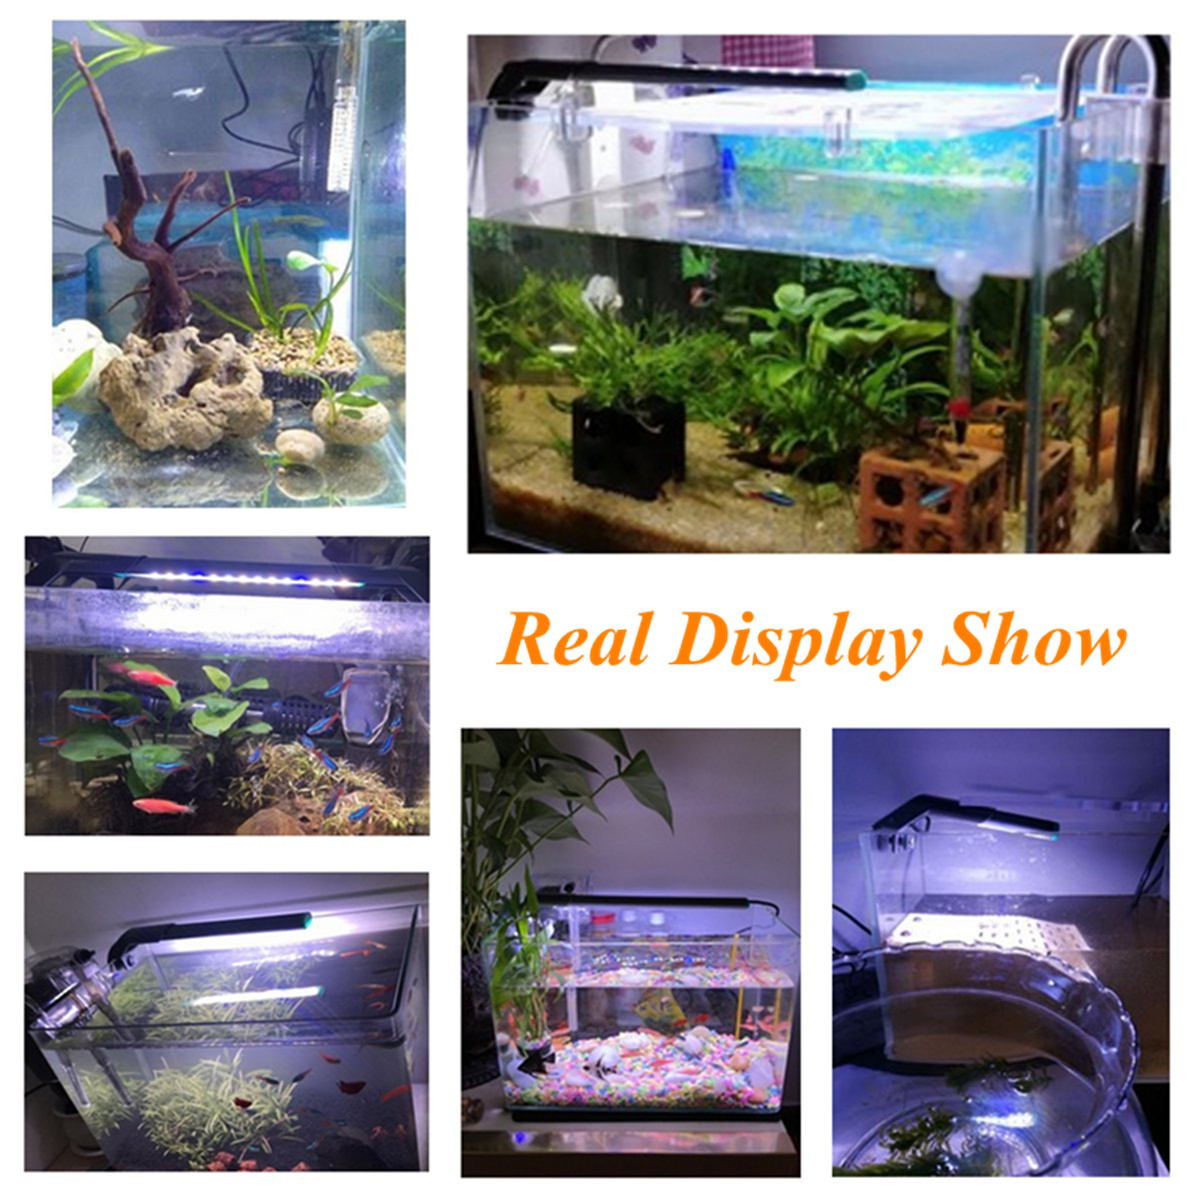 110 - 220V Aluminium Alloy Shell Waterproof Aquarium Fish Tank LED Light Adjustable Water Grass Lamp